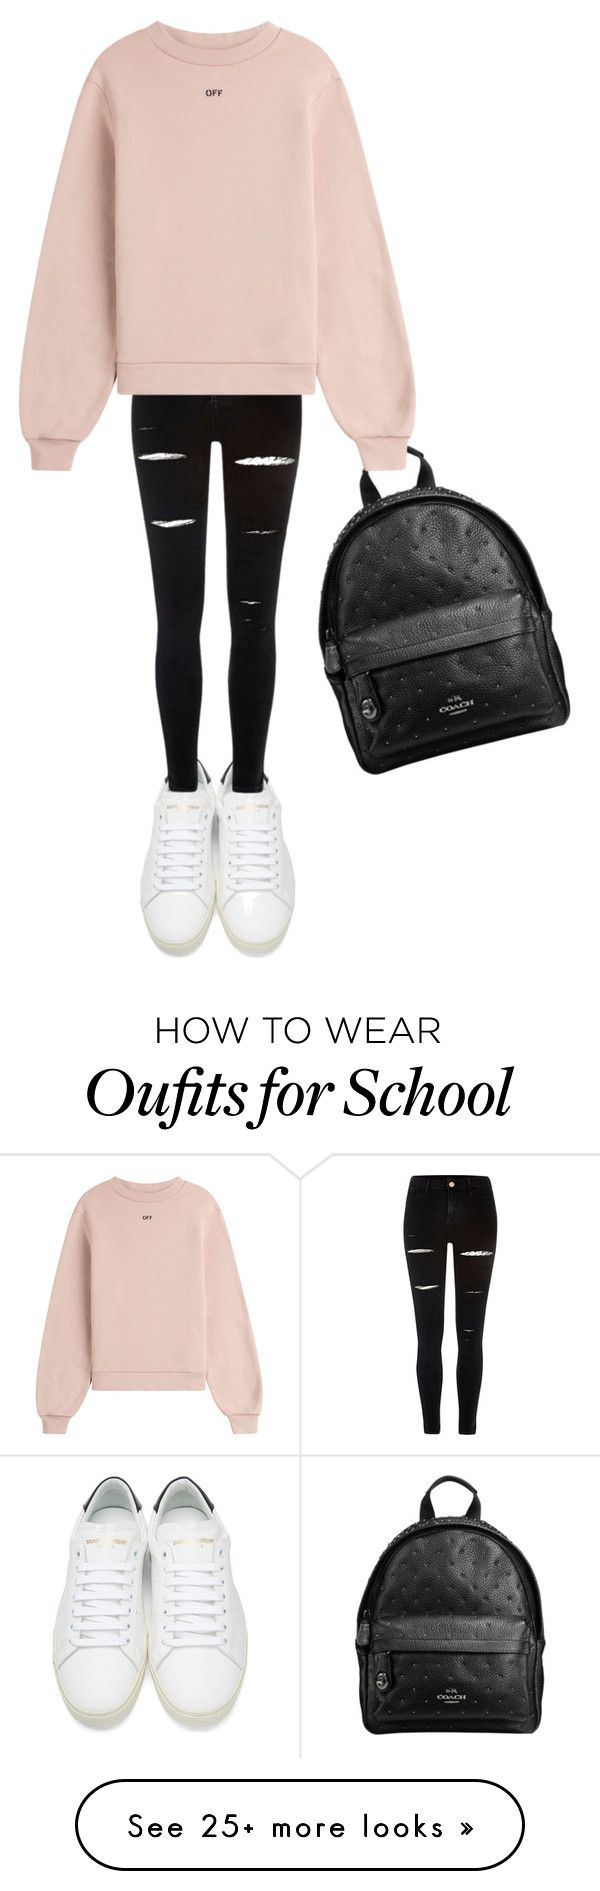 """School look"" by madalina-cojocaru-1 on Polyvore featuring Yves Saint Laurent, River Island, Coach and Off-White"